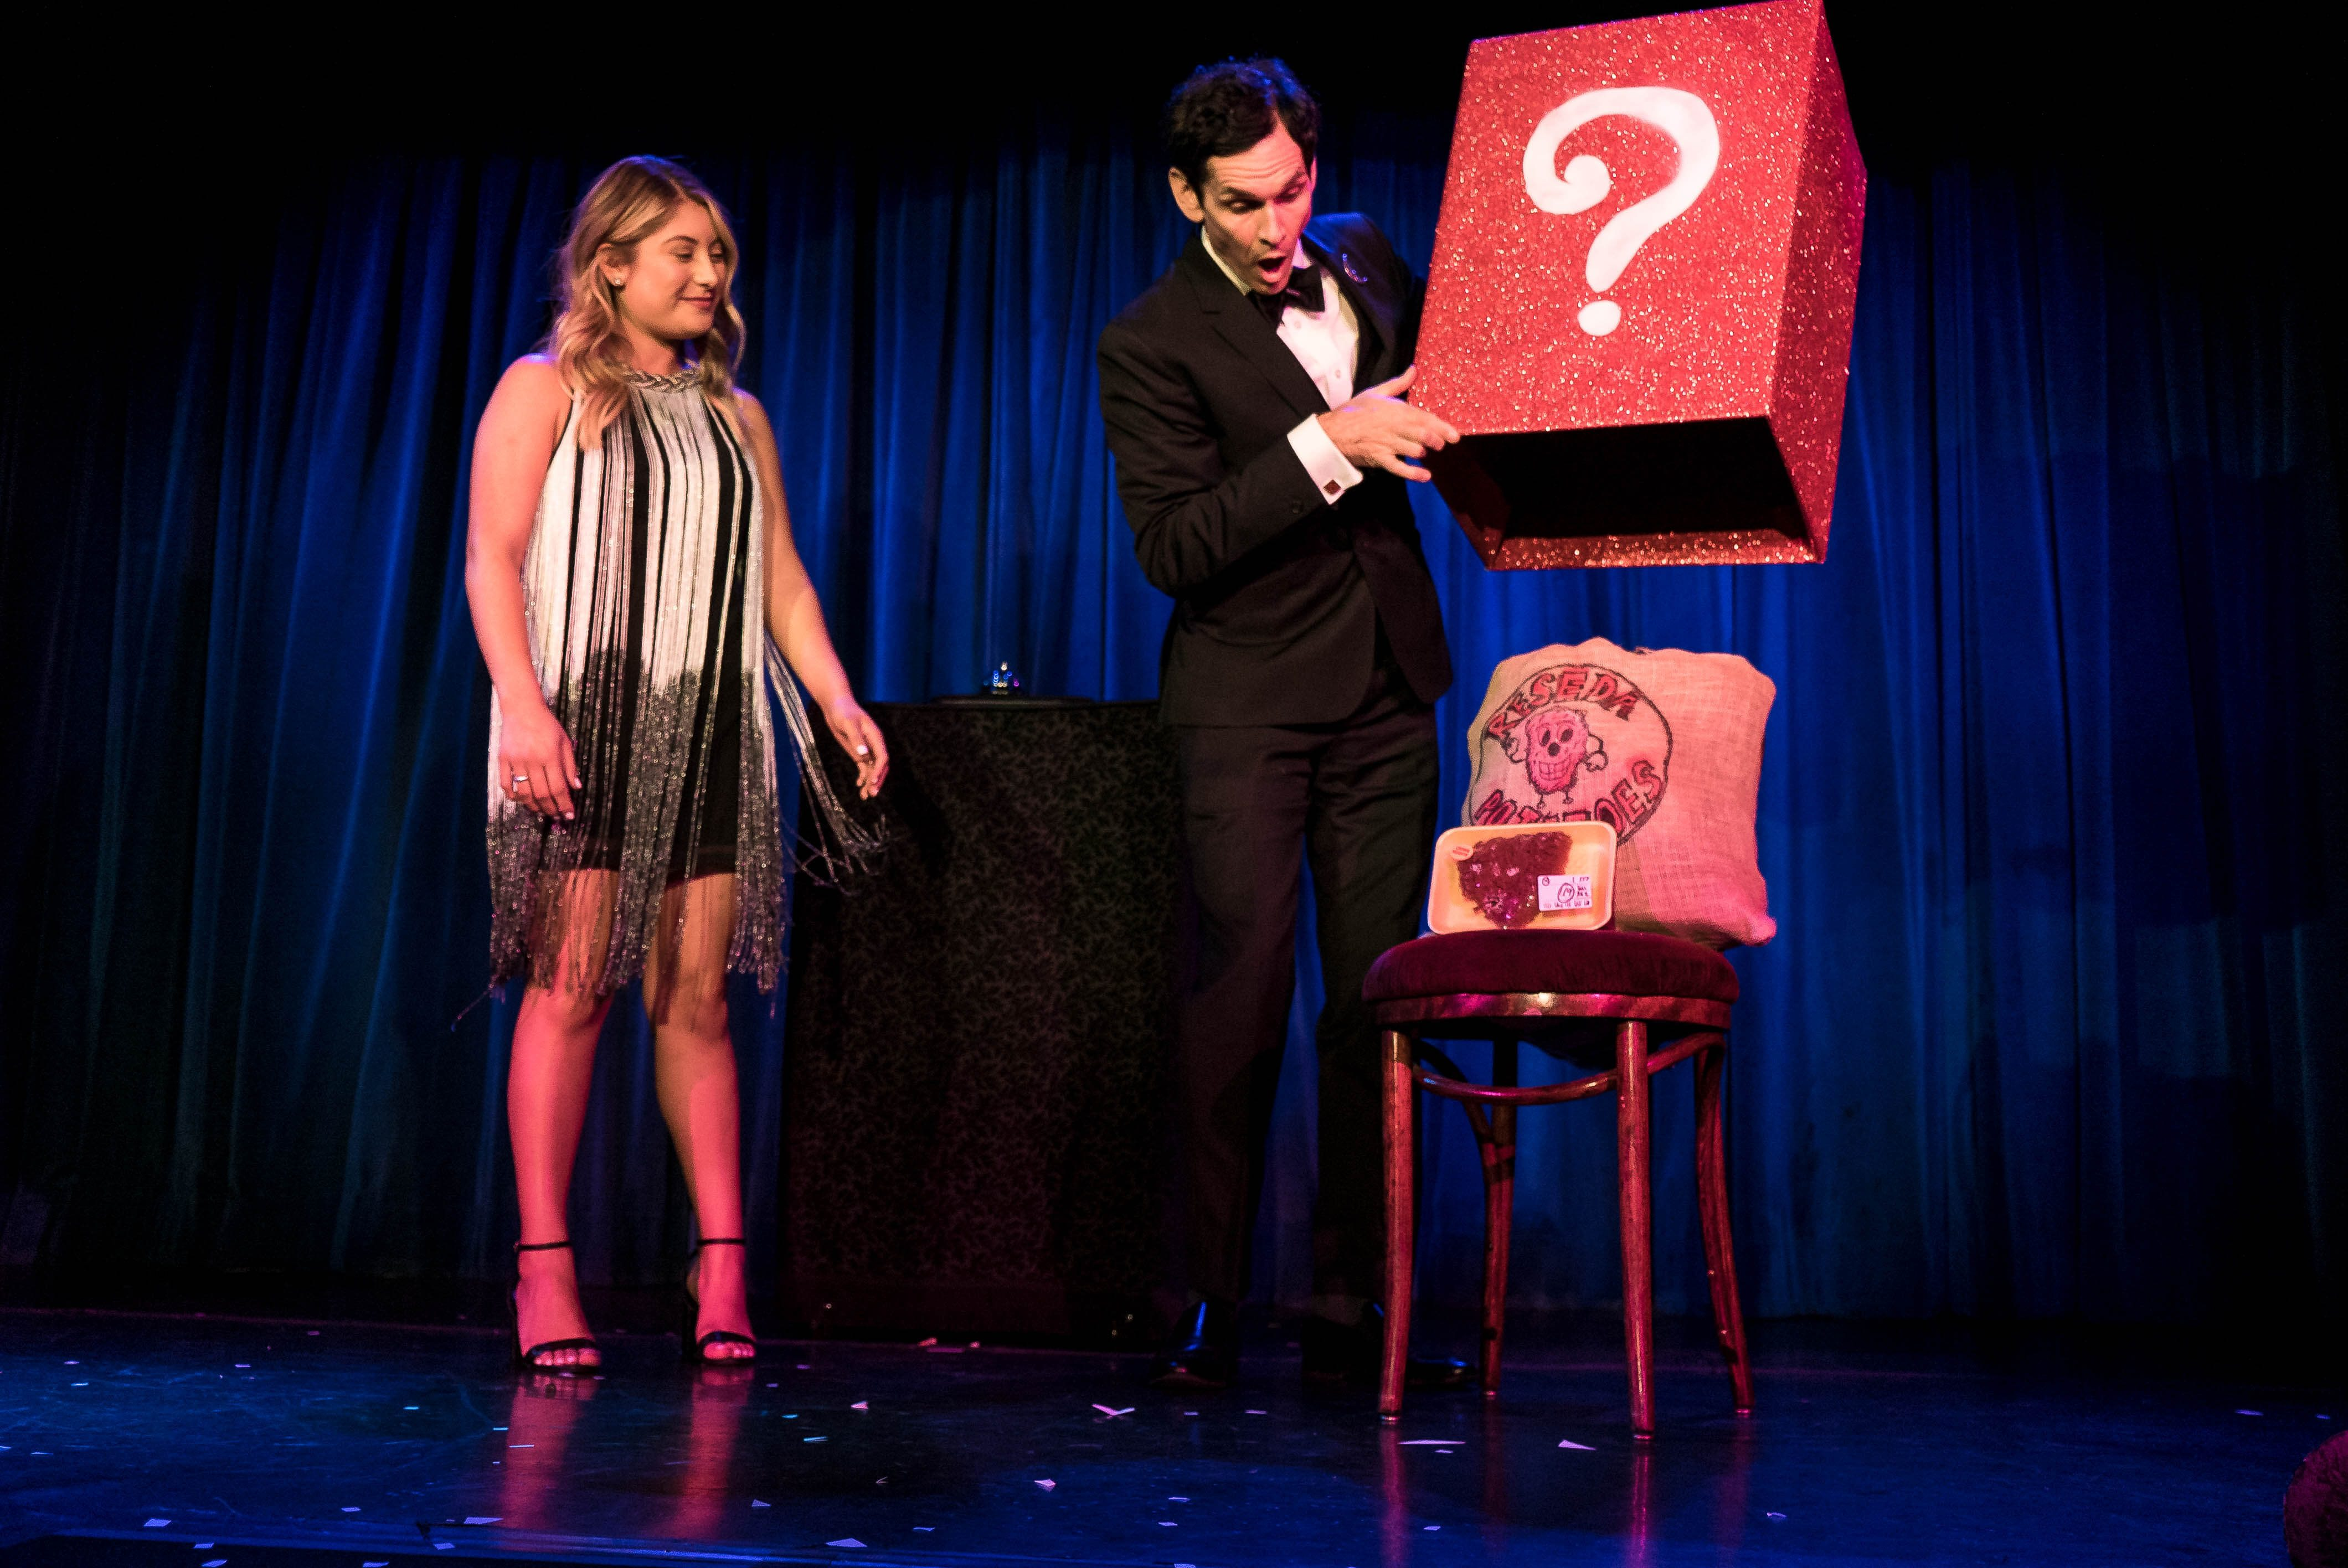 magician on stage